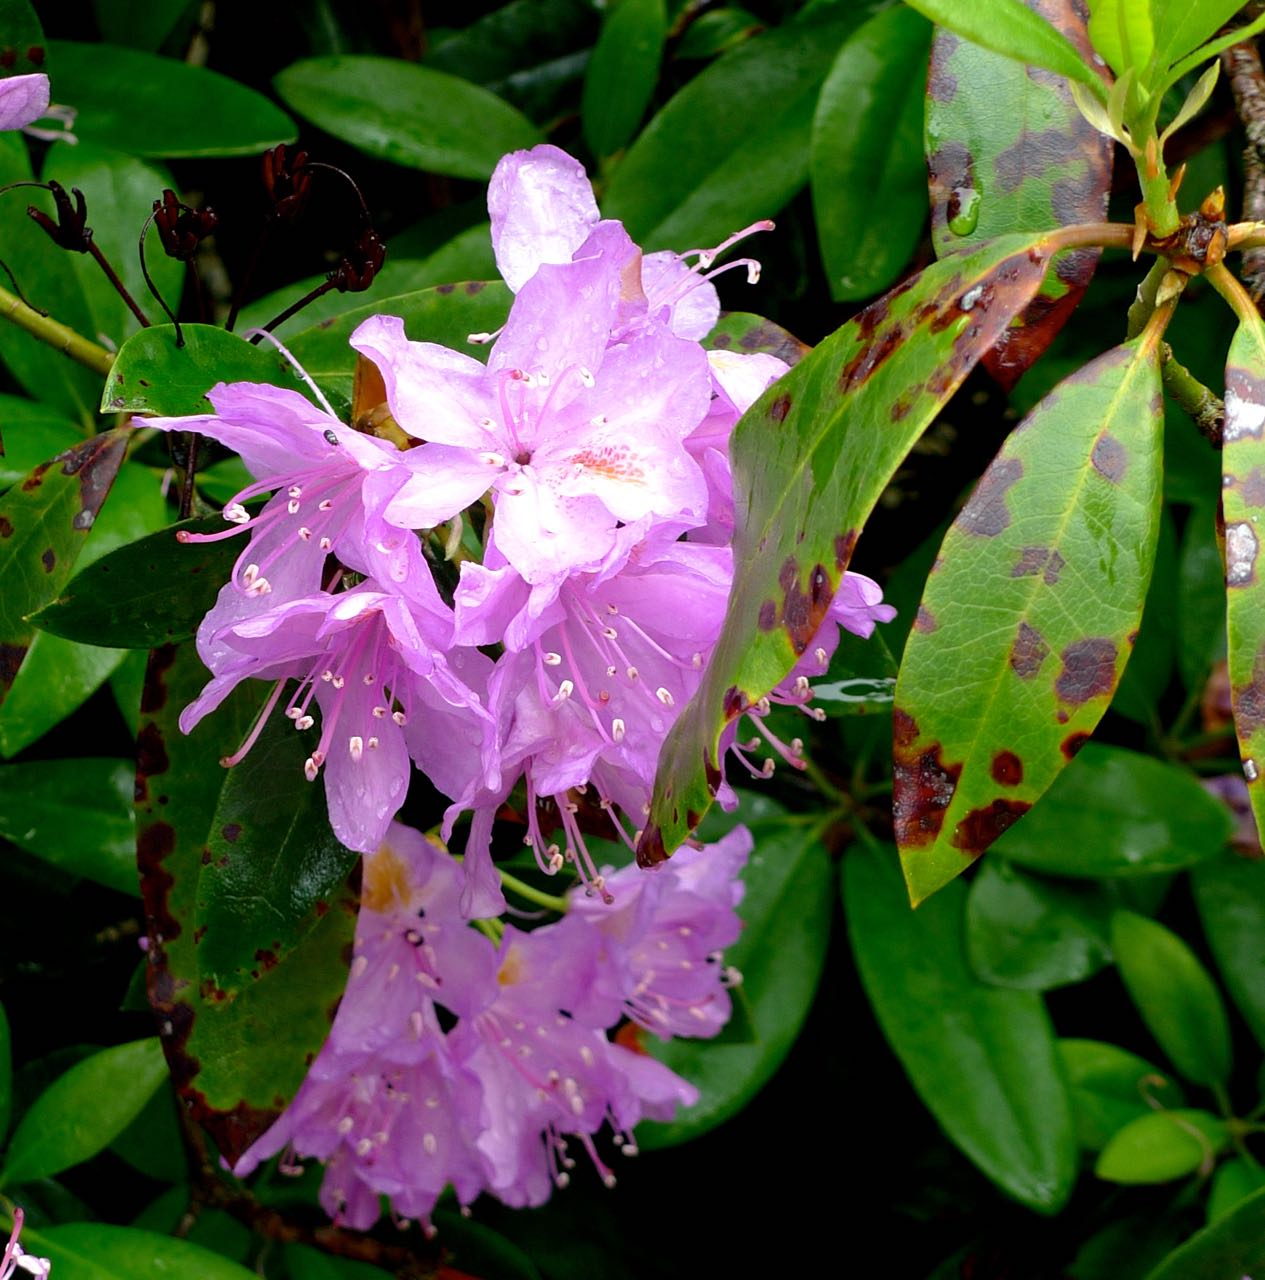 A rhododendron close up